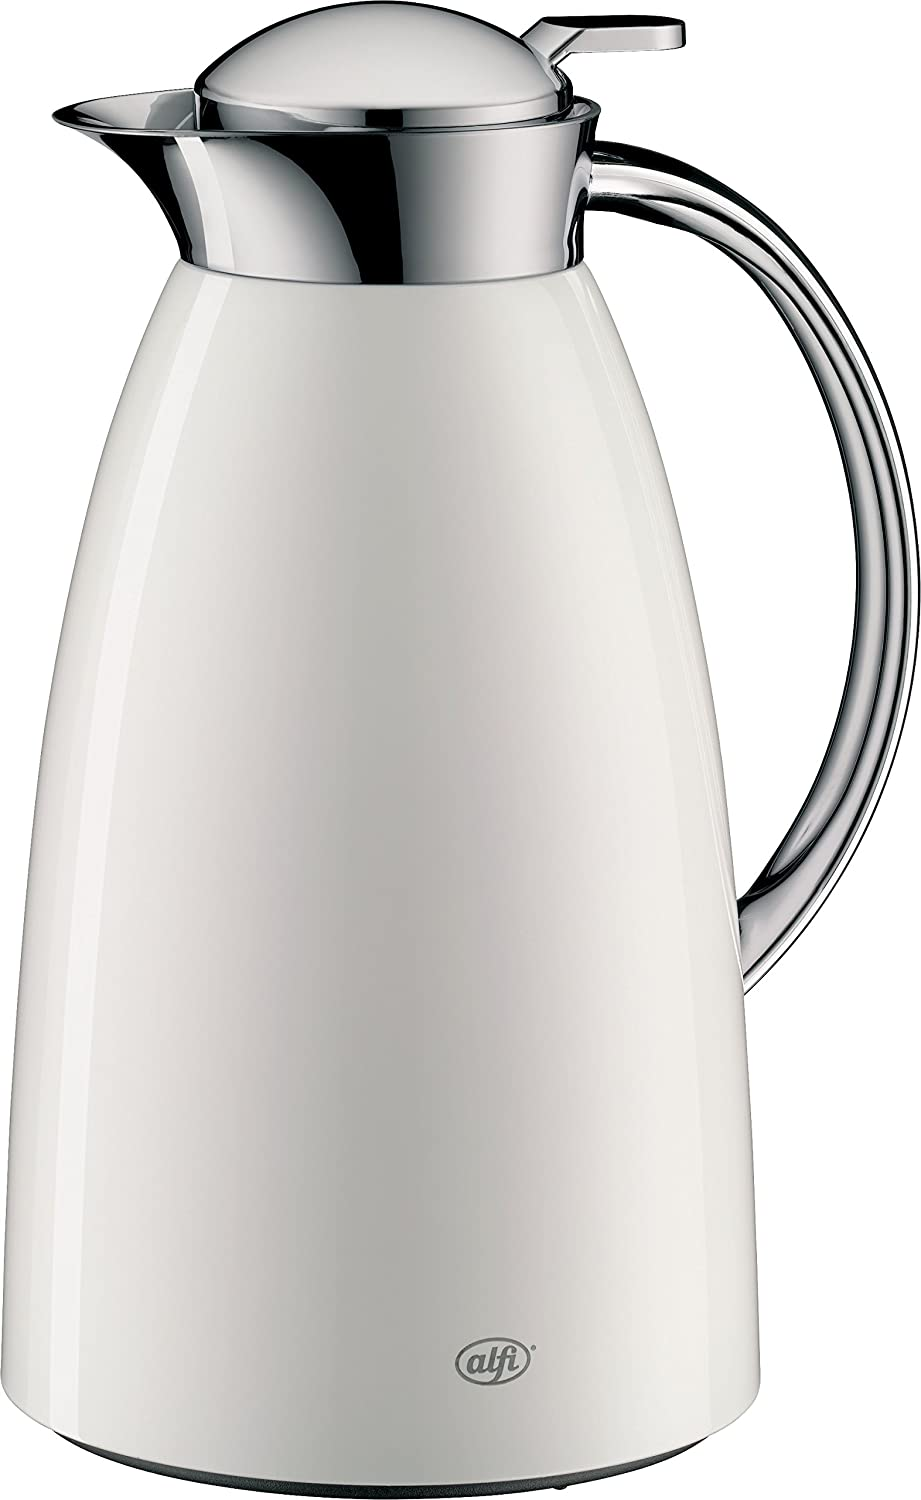 B01F8C4UWS alfi Gusto Glass Vacuum Lacquered Metal Thermal Carafe for Hot and Cold Beverages, 1.0 L, White 71ILwlaT1mL